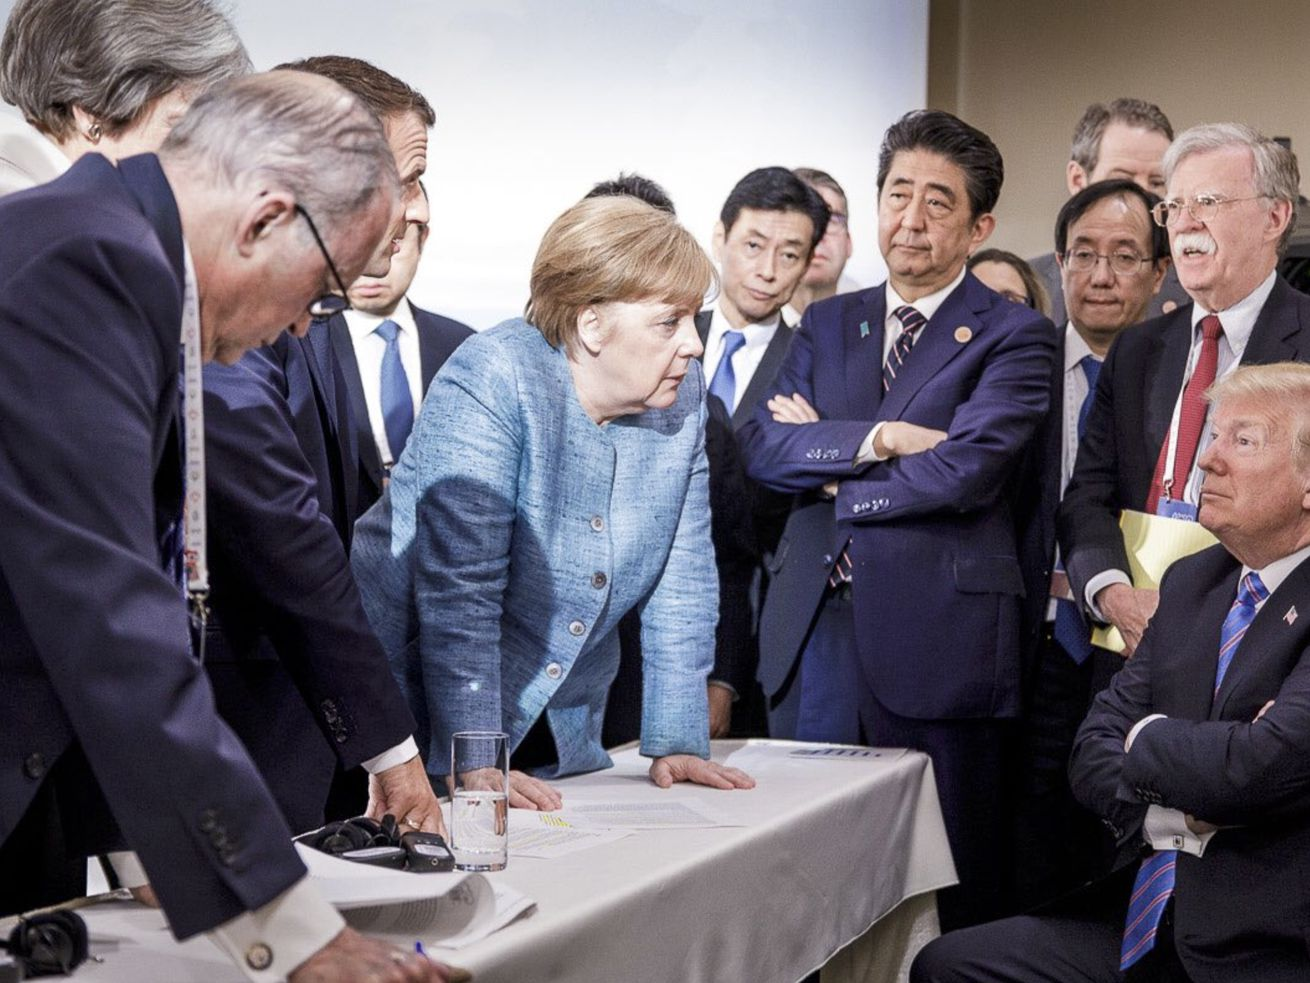 World leaders huddle at the G7 summit.